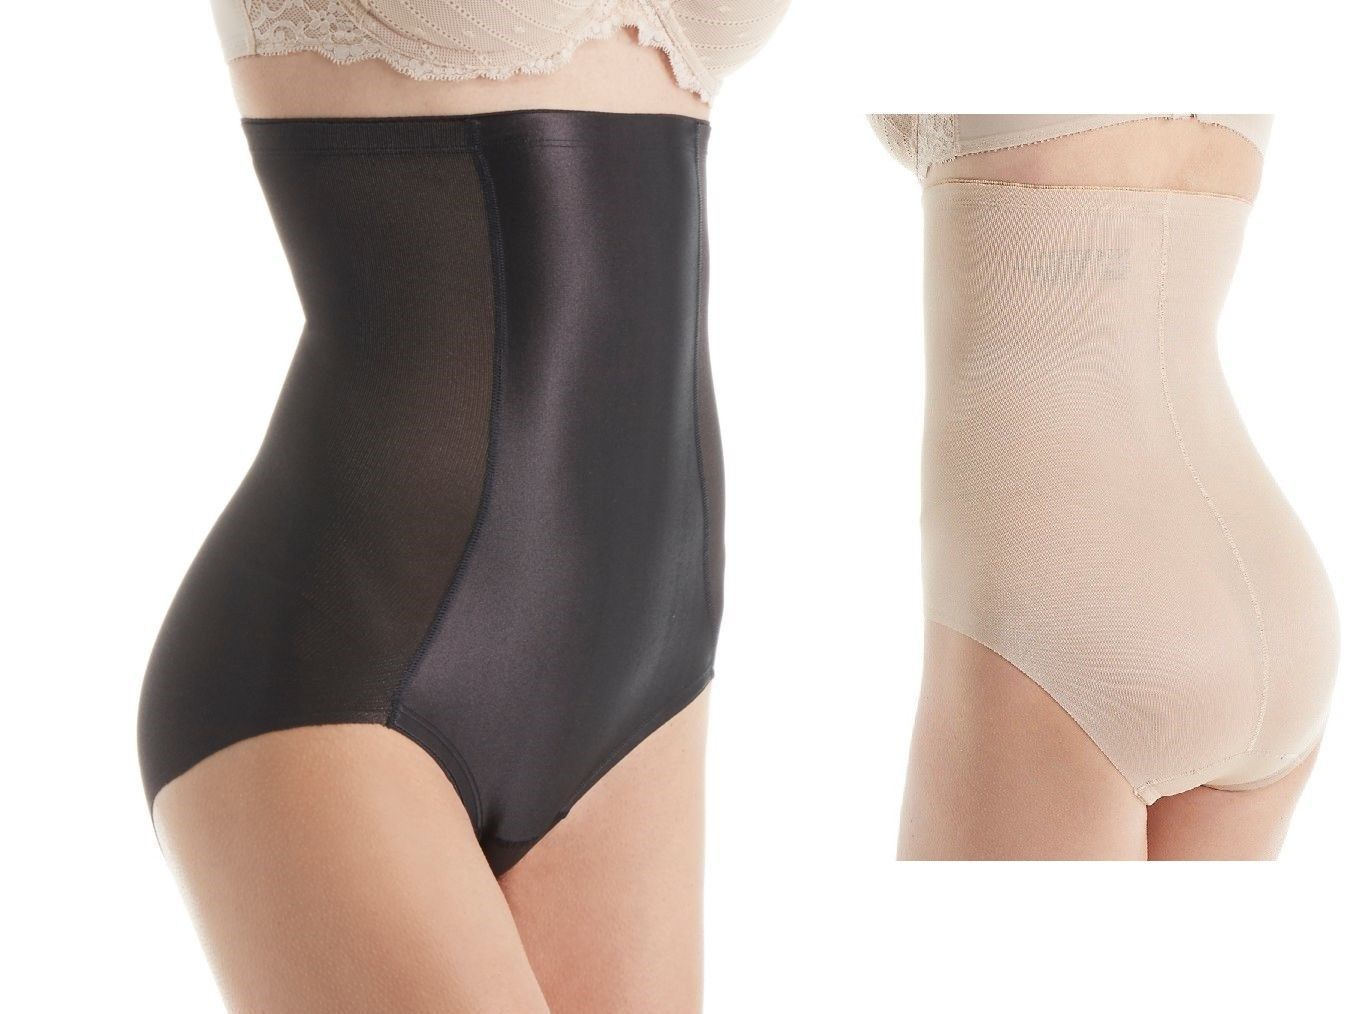 c7d0905f27 Naomi   Nicole Value Firm Control High Waist Shaping Brief 7125 Black Large